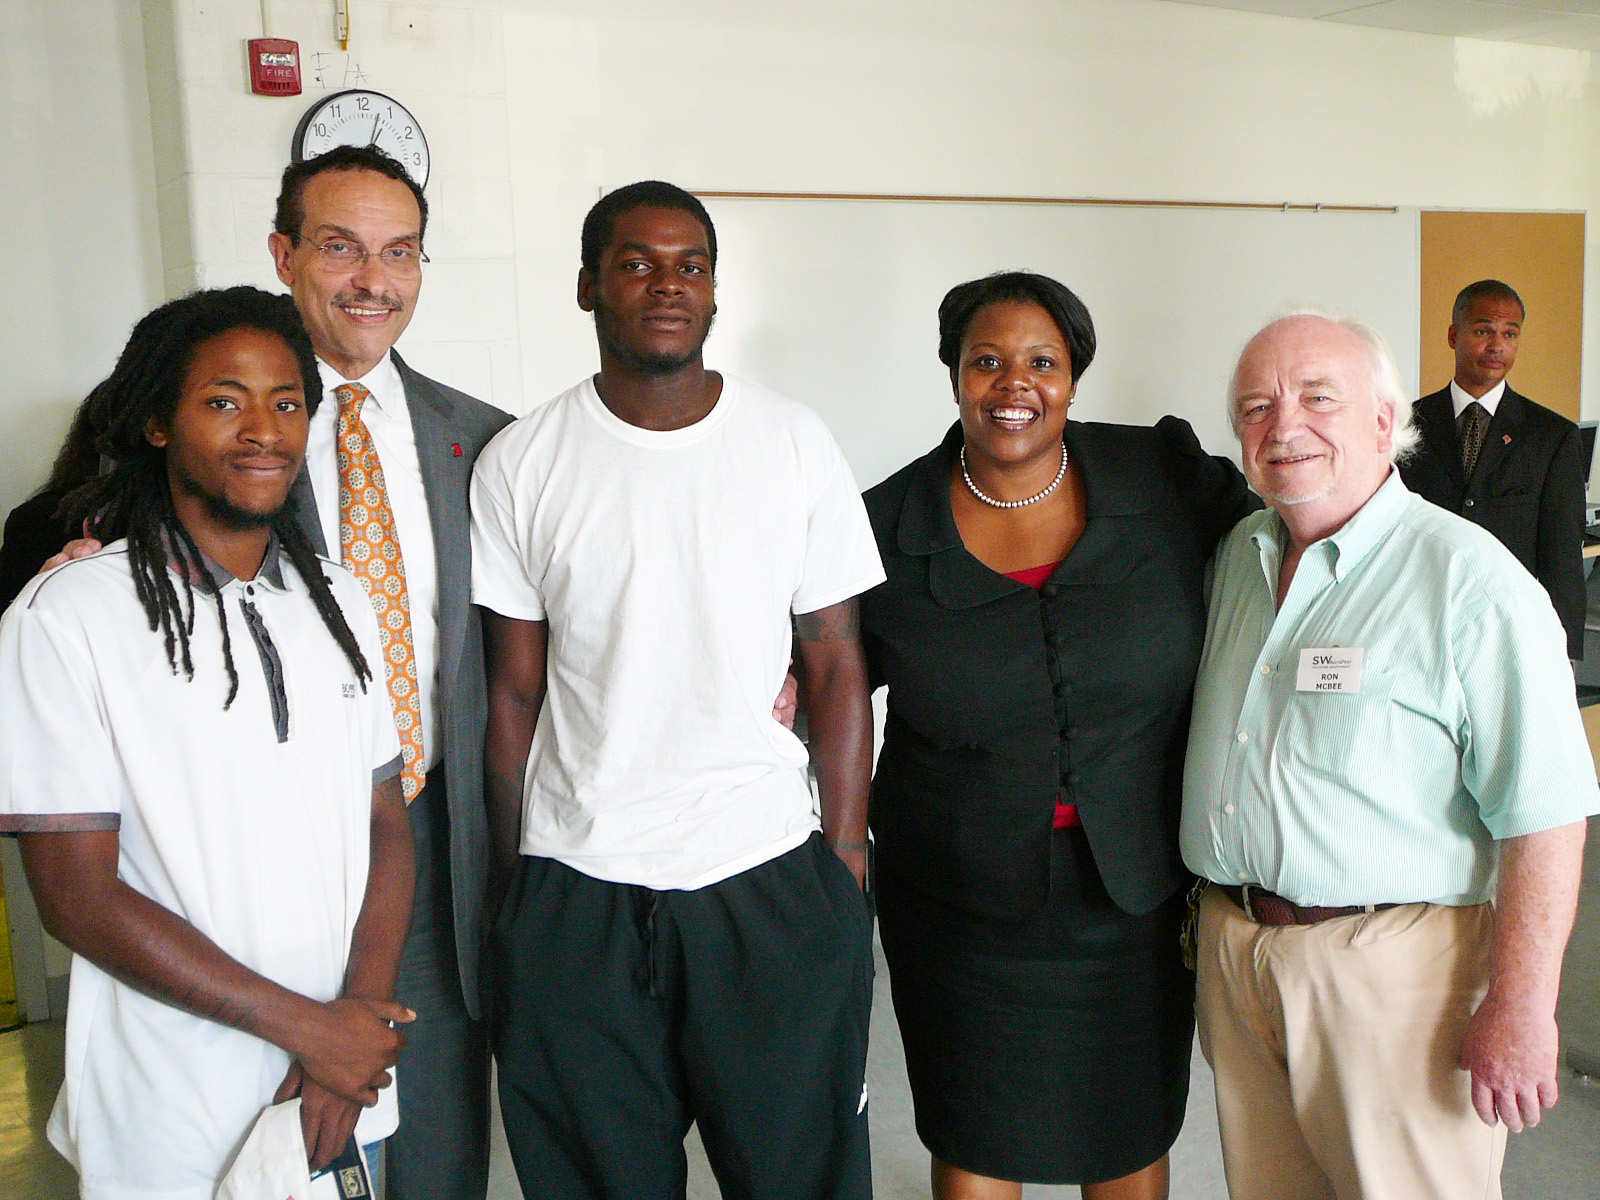 Mayor Vincent Gray (2nd from left) and Chancellor Kaya Henderson (2nd from right) visit the new Computer Lab installed by SWNAs Technology Task Force interns Duane Patterson (far left) and Andre Wilkinson (3rd from left).  Andre, now 21, attended Amidon in grade school.   ANC 6D Commissioner Ron McBee is on the right.  The 25 computers were among over 200 donated to SWNA by the American College of Obstetricians and Gynecologists, located in Southwest Washington. (Photo by Perry Klein)